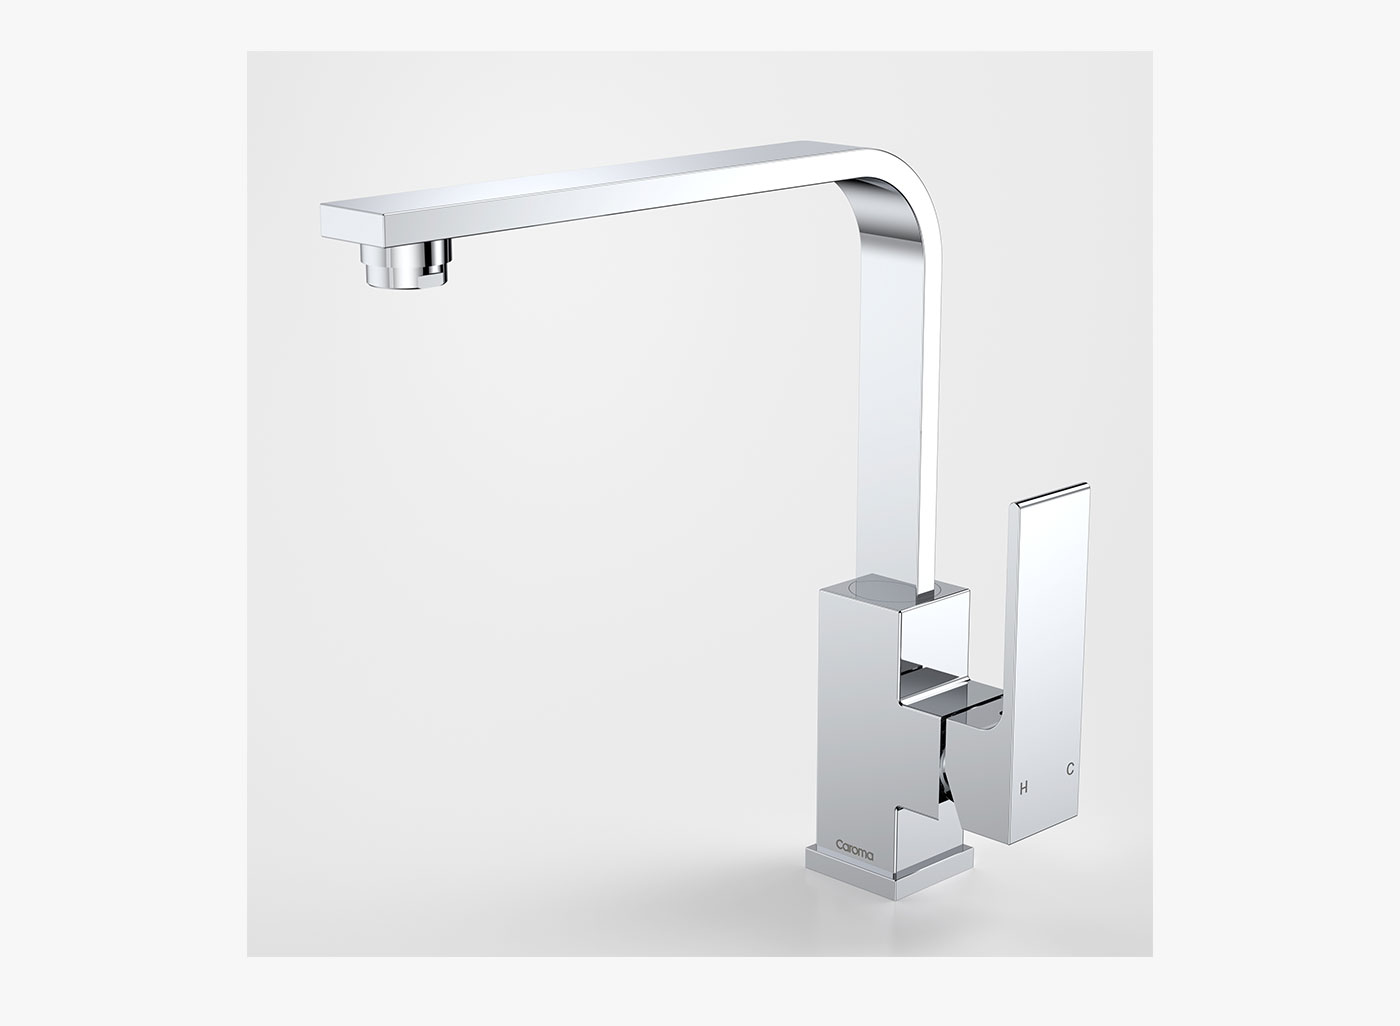 straight lines with a strikingly strong aesthetic to match a range of bathroom styles. Ideal for those seeking a tasteful